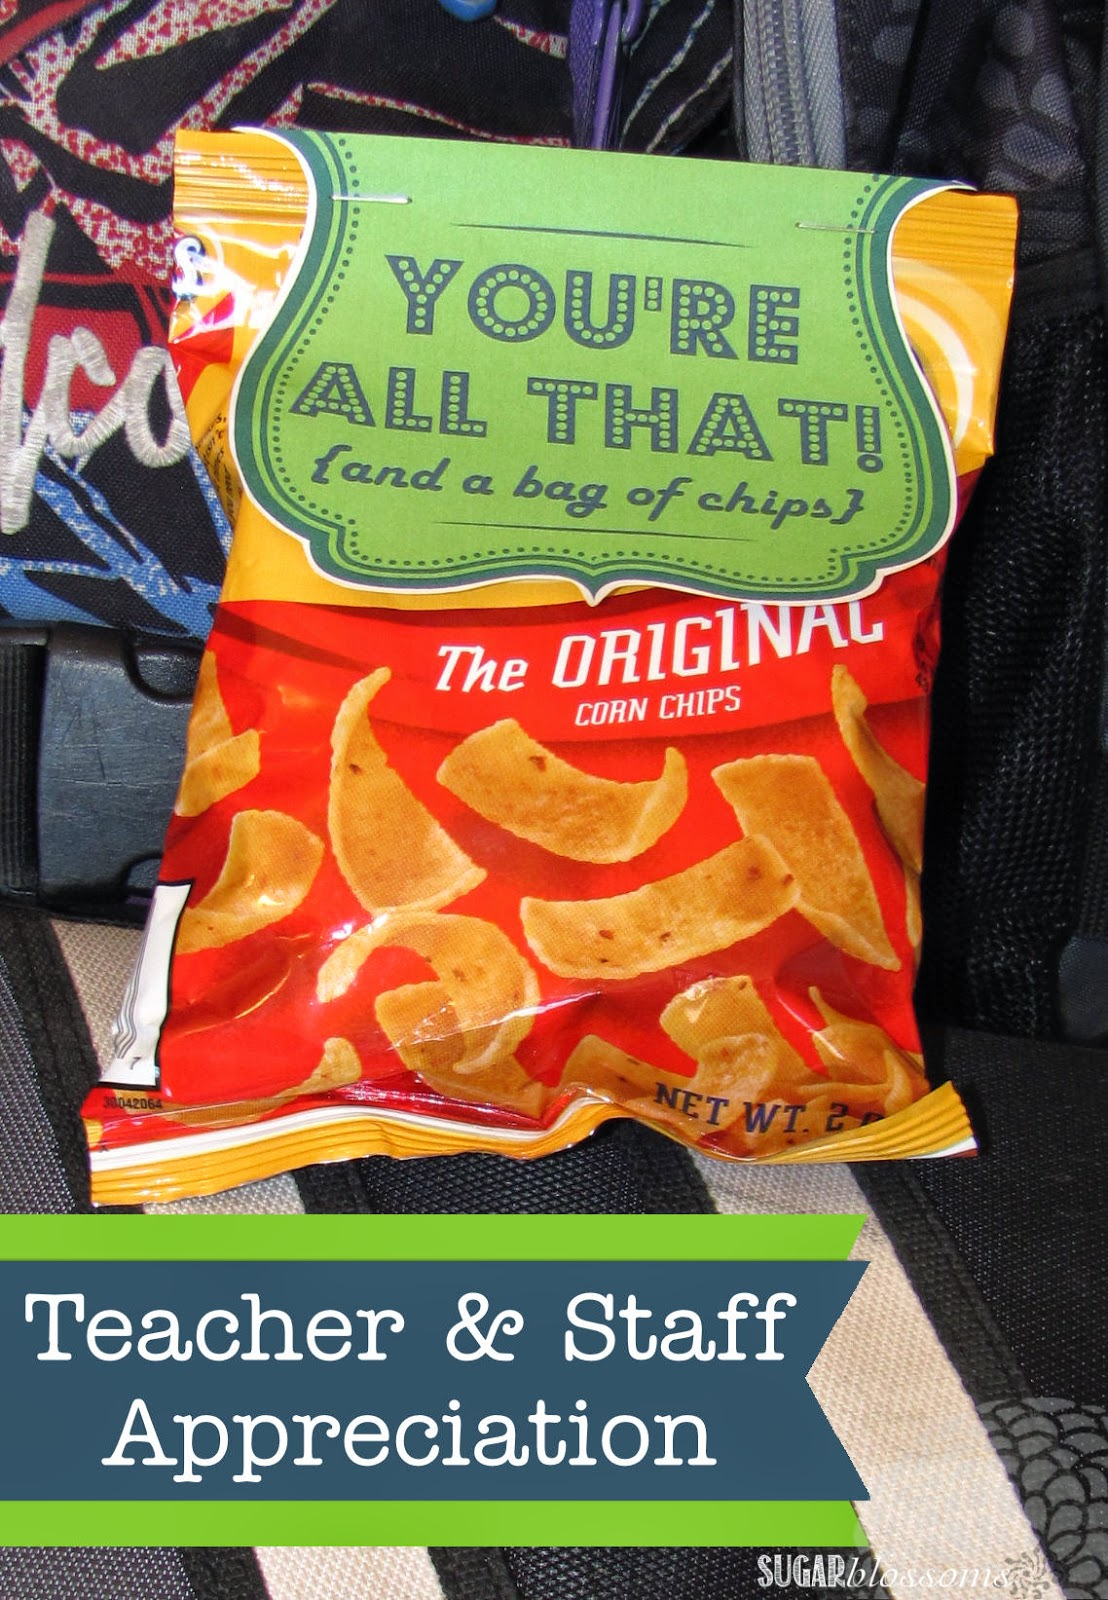 image about All That and a Bag of Chips Printable named Lovable Sugar Blossoms: Instructor Staff members Appreciation Printable